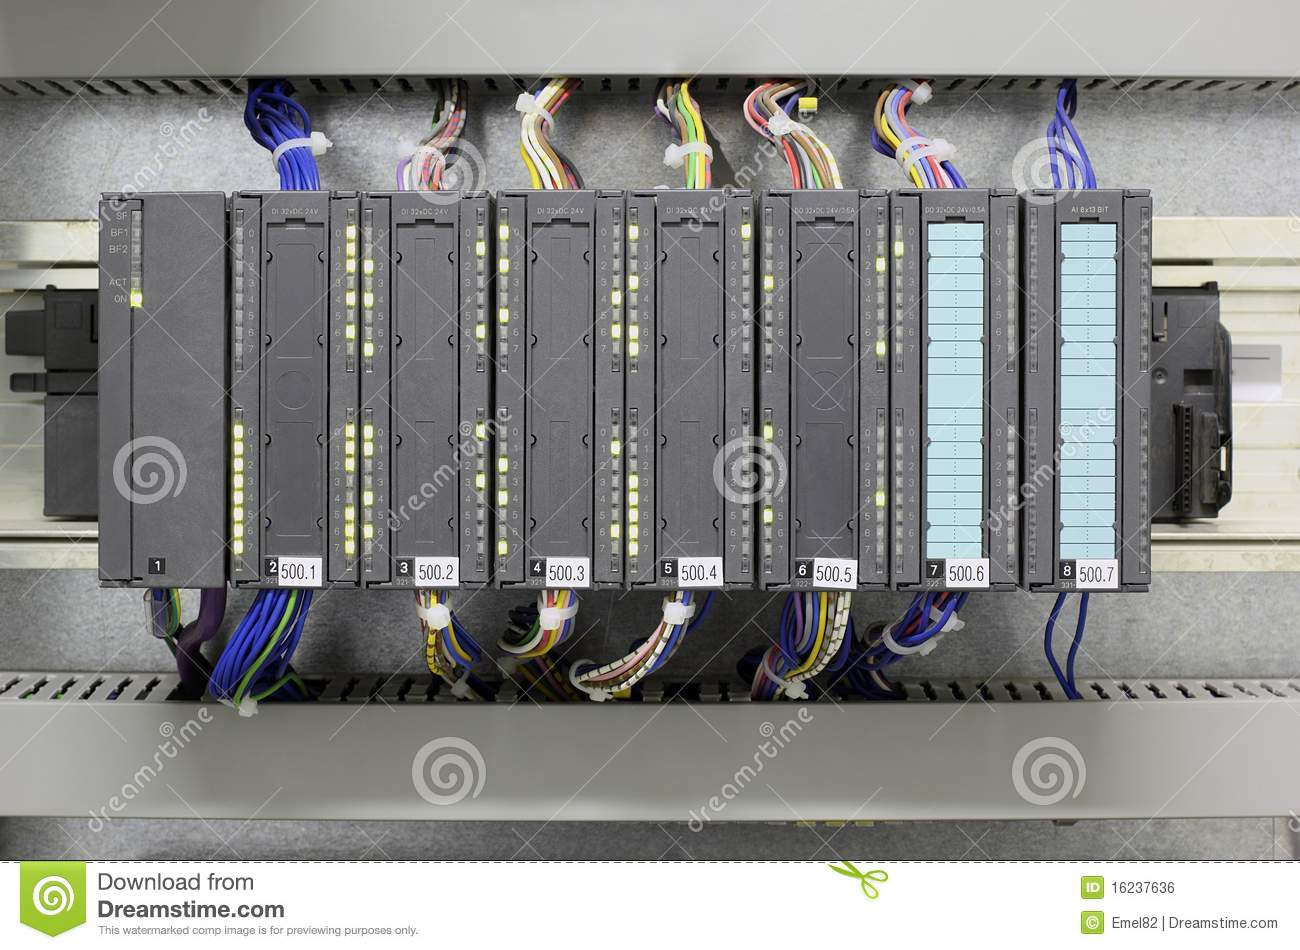 Plc Programming Introduction Sofcon additionally Royalty Free Stock Image Industrial Plc Image16237636 additionally Automotive Wiring Color Codes Abbreviations moreover Plc Omron Cj1m Mengendalikan Inverter in addition Plc Discription. on plc ladder diagram